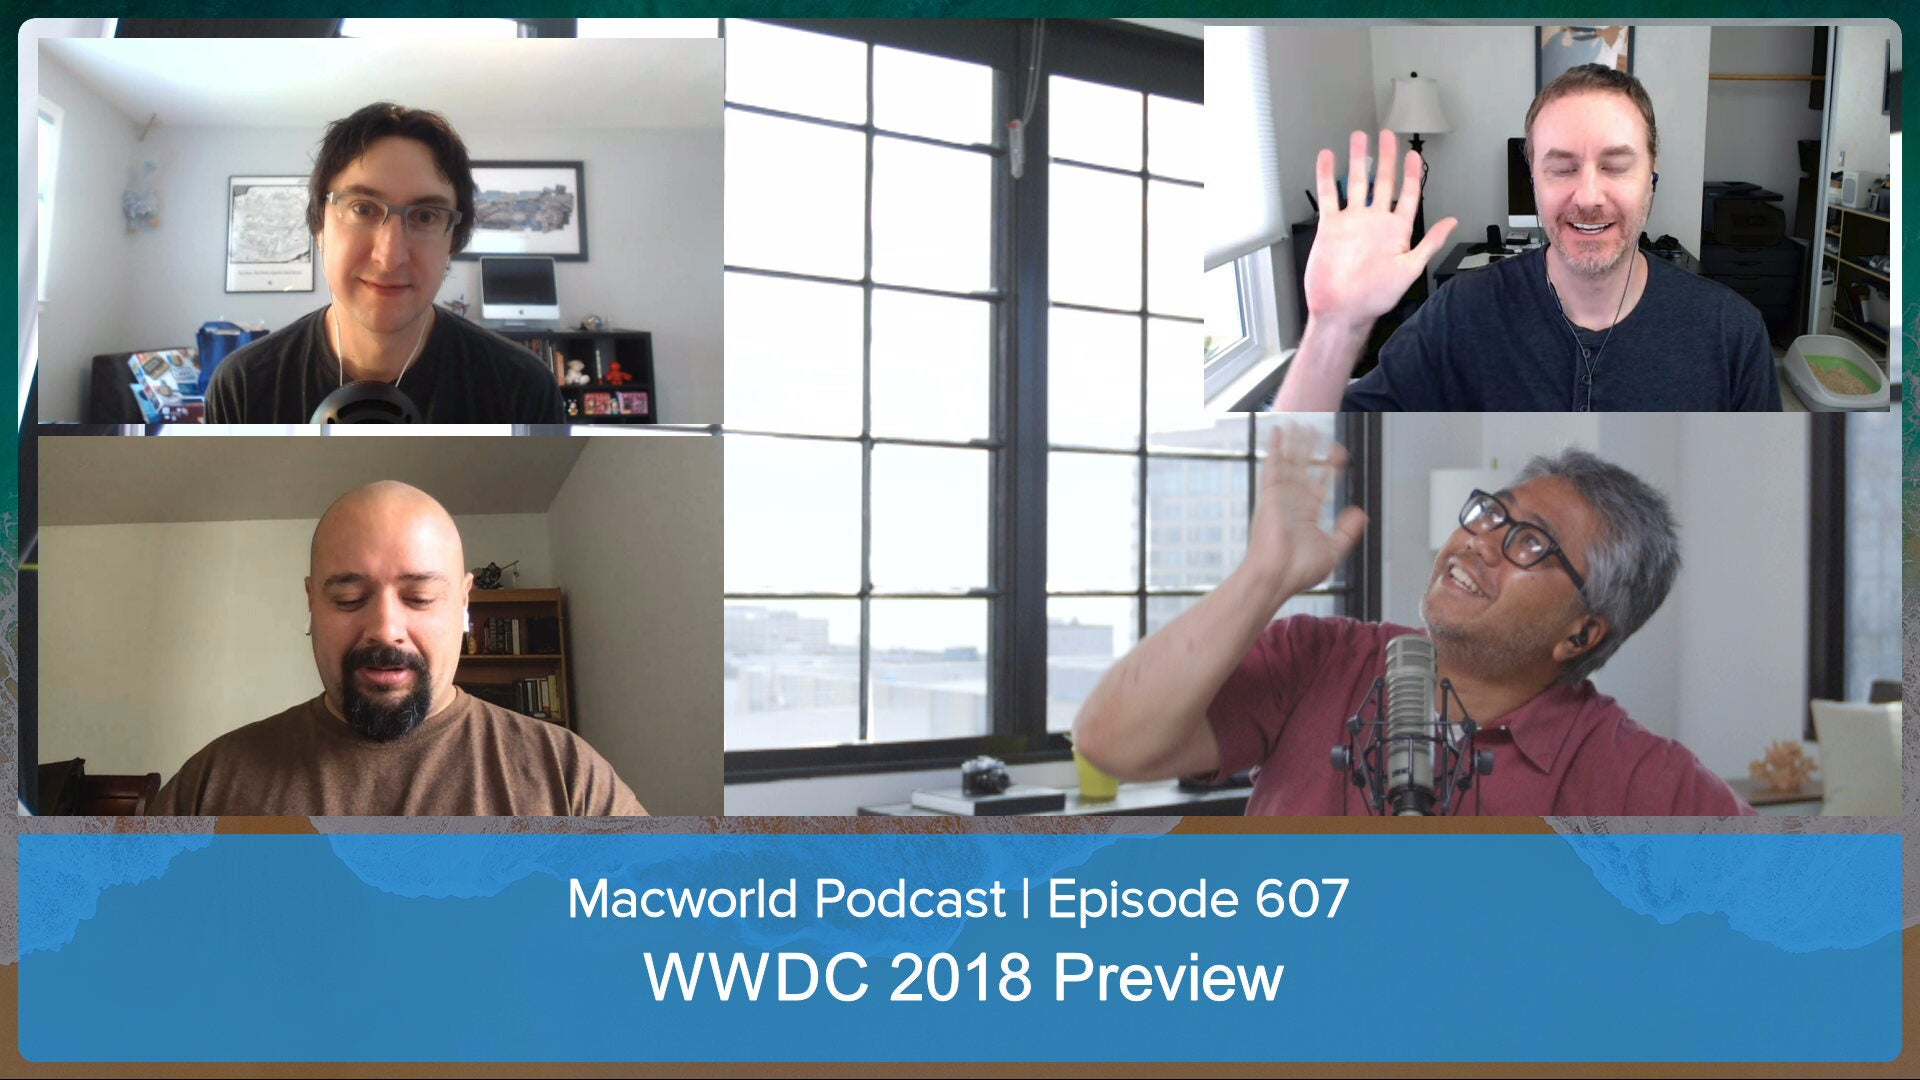 Macworld Podcast 607